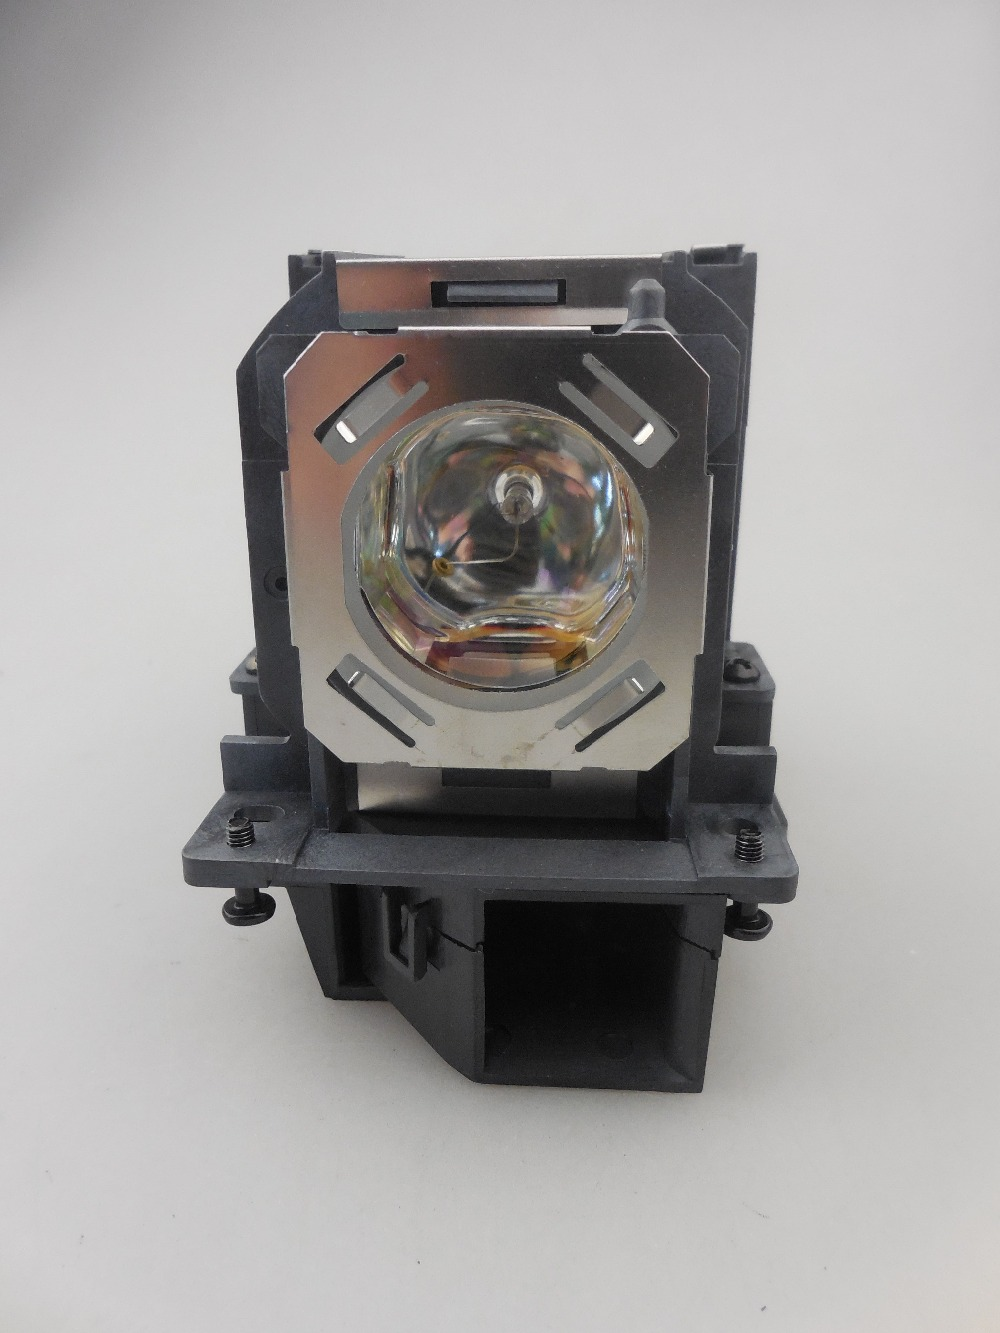 Replacement Projector Lamp LMP C281 for SONY VPL CH370 and VPL CH375-in Projector Bulbs from Consumer Electronics    1